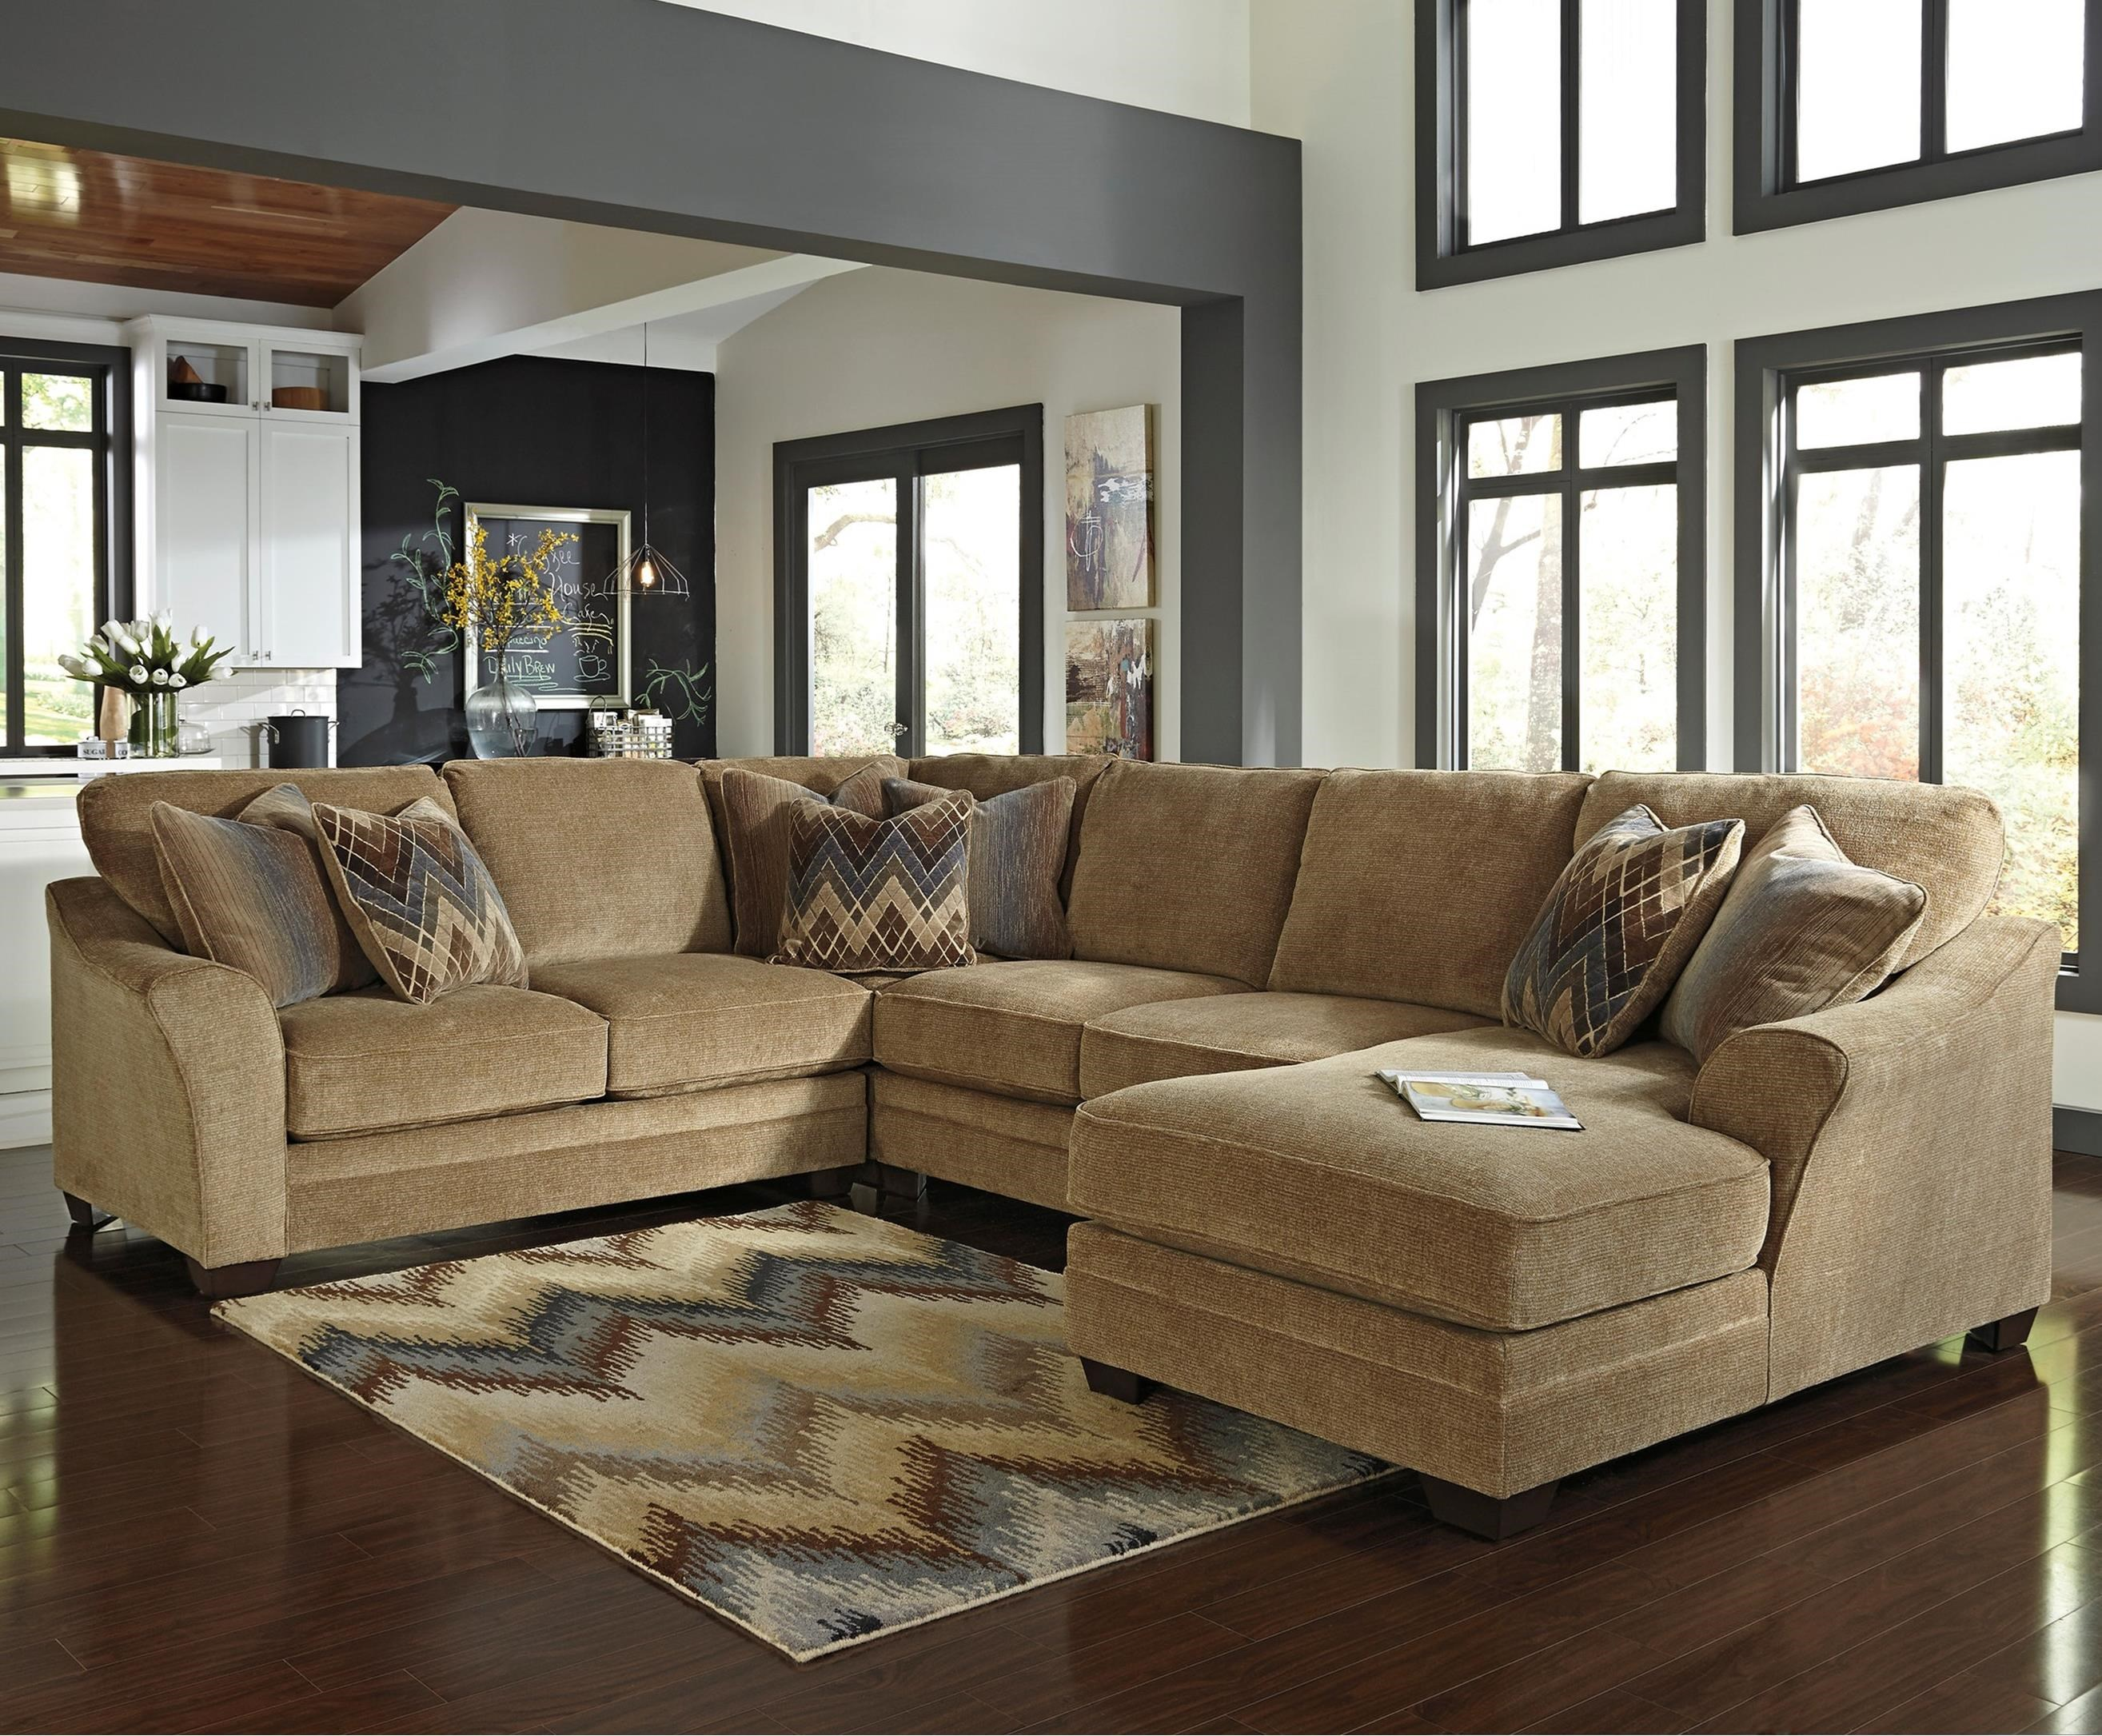 Benchcraft Lonsdale 4-Piece Sectional with Right Chaise - Item Number: 9211155+77+34+17